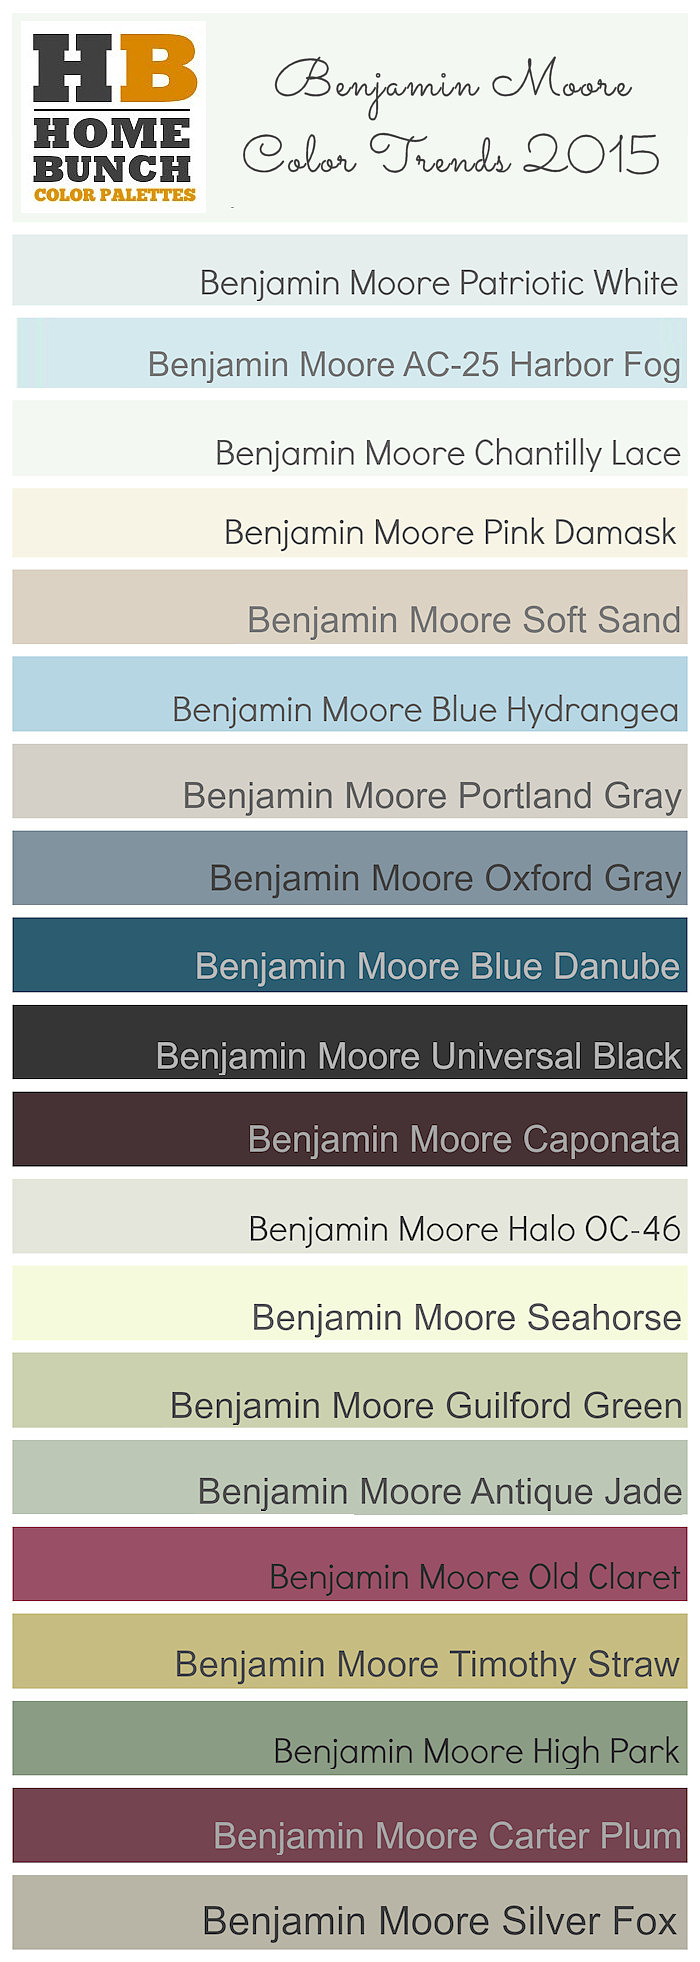 Benjamin Moore Color Trends 2015. Benjamin Moore Patriotic White, Benjamin Moore AC-25 Harbor Fog,  Benjamin Moore Chantilly Lace, Benjamin Moore Pink Damask OC-72, Benjamin Moore Soft Sand, Benjamin Moore Blue Hydrangea, Benjamin Moore Portland Gray, Benjamin Moore Oxford Gray, Benjamin Moore Blue Danube, Benjamin Moore Universal Black , Benjamin Moore Caponata, Benjamin Moore Halo OC-46, Benjamin Moore Seahorse, Benjamin Moore Guilford Green HC-116,  Benjamin Moore Antique Jade, Benjamin Moore Old Claret, Benjamin Moore Timothy Straw, Benjamin Moore High Park, Benjamin Moore Carter Plum, Benjamin Moore Silver Fox #BenjaminMoore #BenjaminMooreColorTrends #2015BenjaminMoorePaintColor #ColorPalette #CompleteBenjaminMooreColorPalette2015